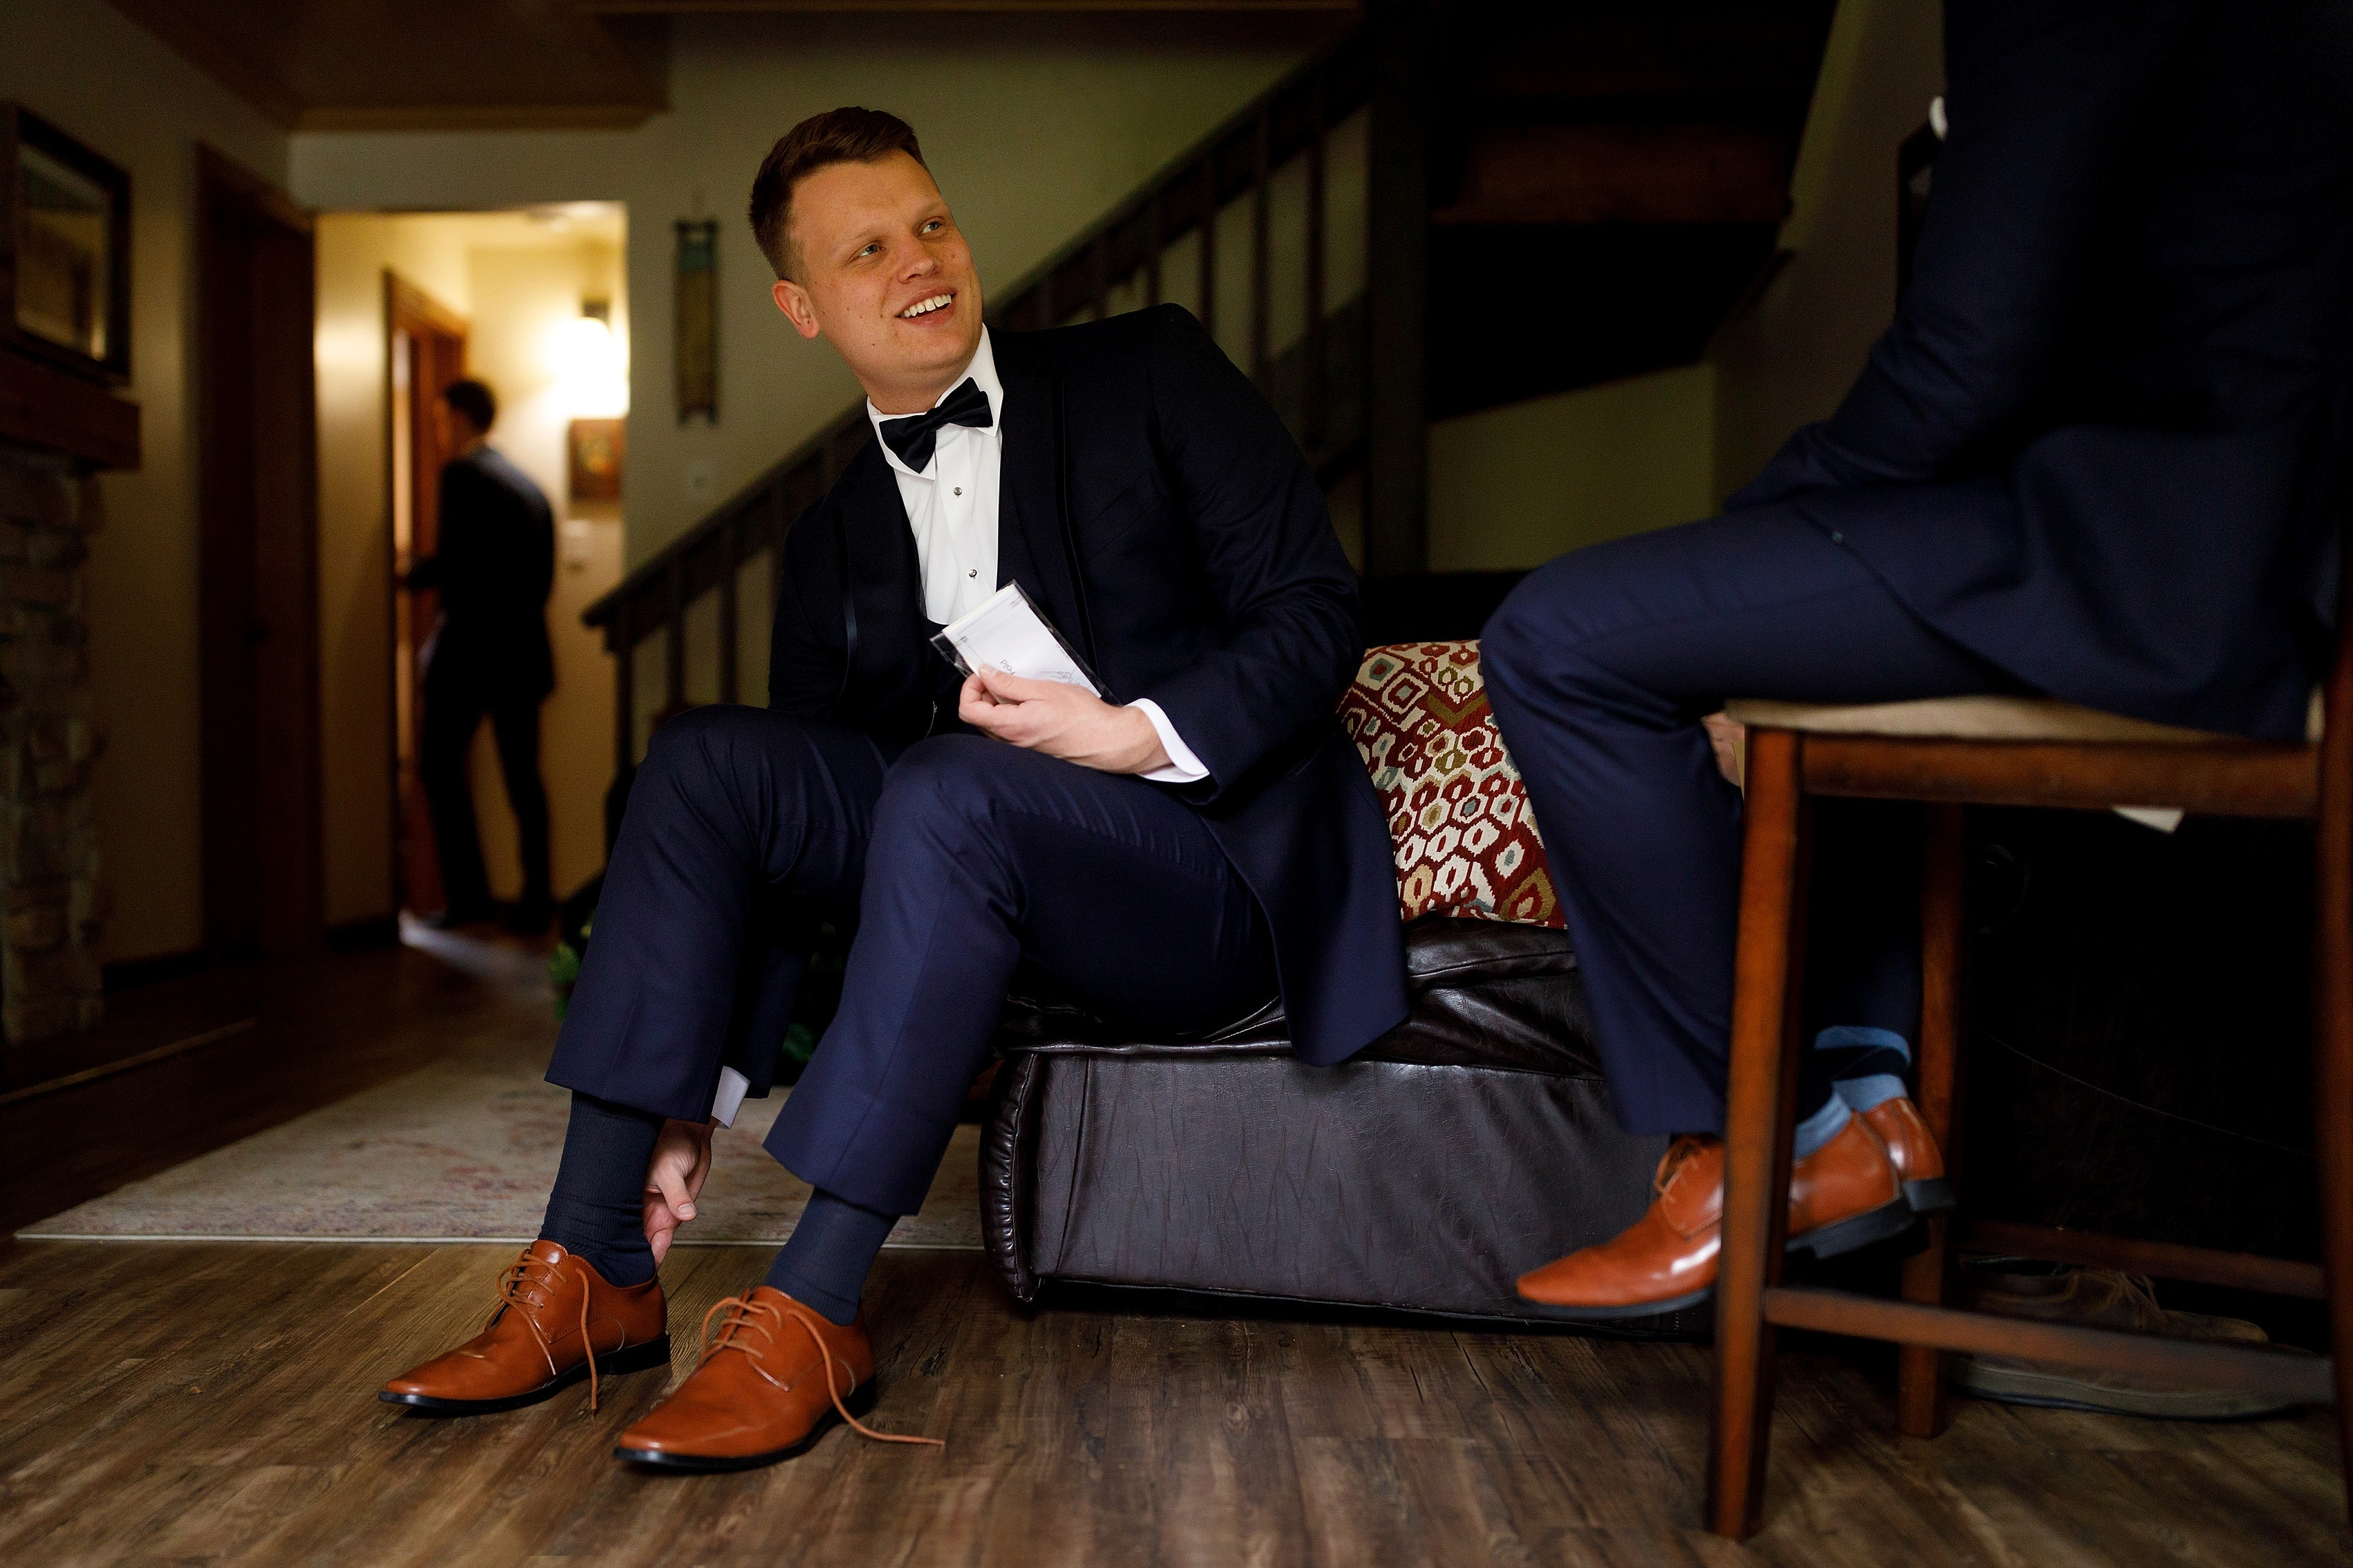 Groom puts on shoes while getting ready for wedding